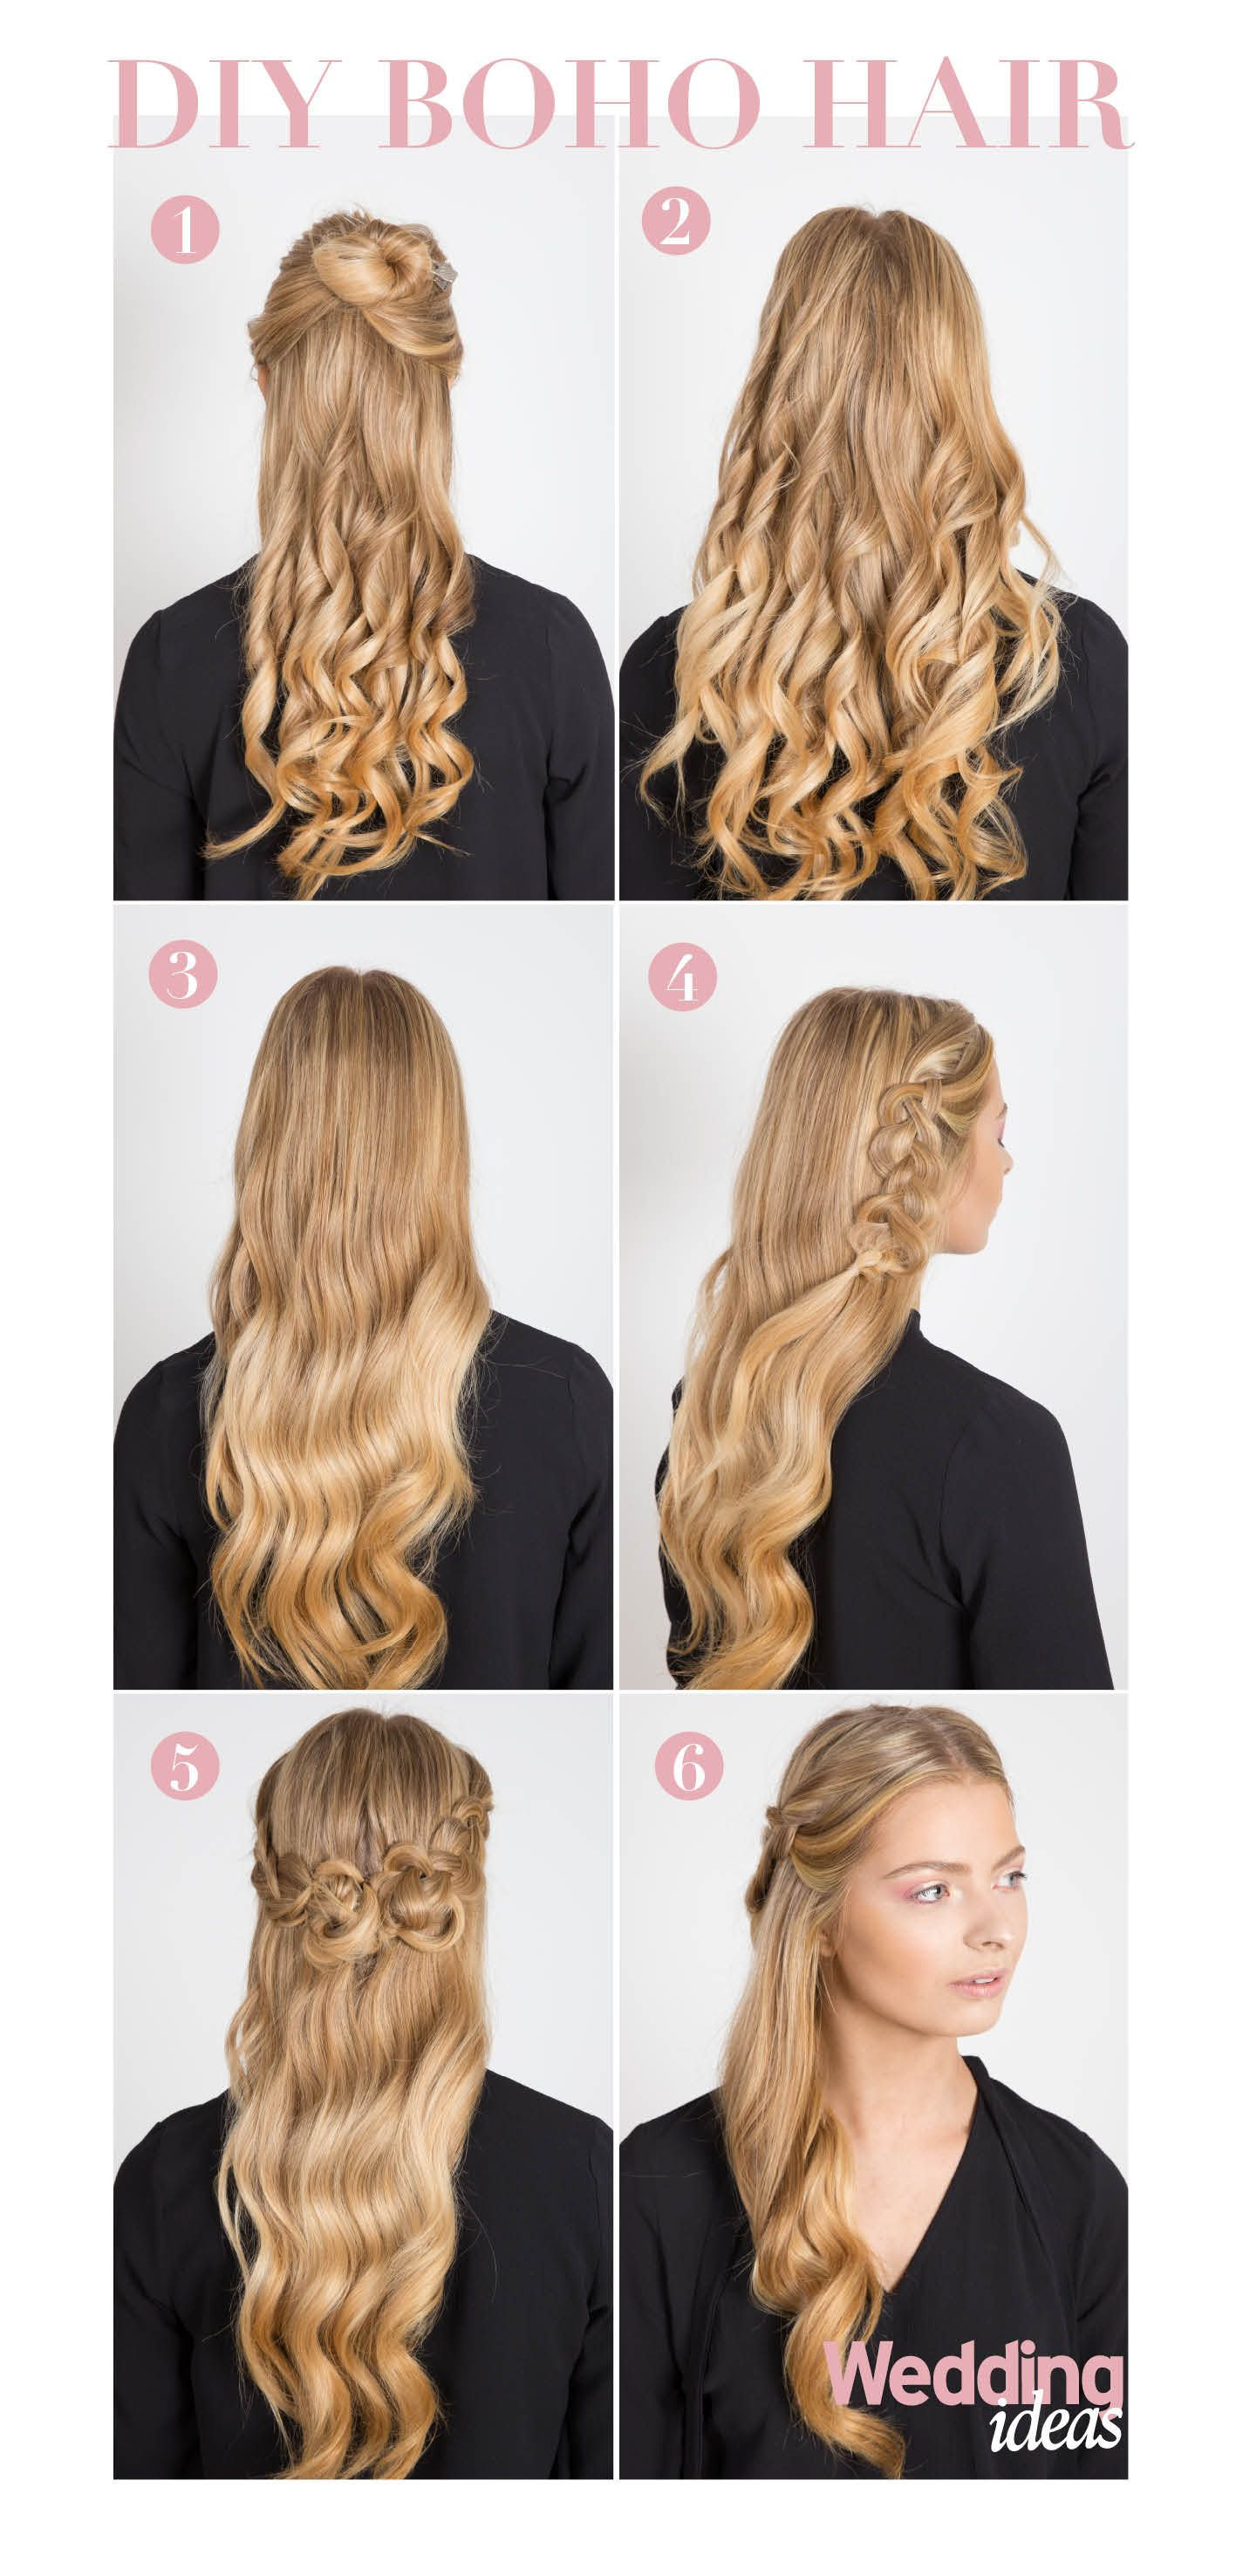 wedding hairstyles: ultimate guide to bridal hair ideas